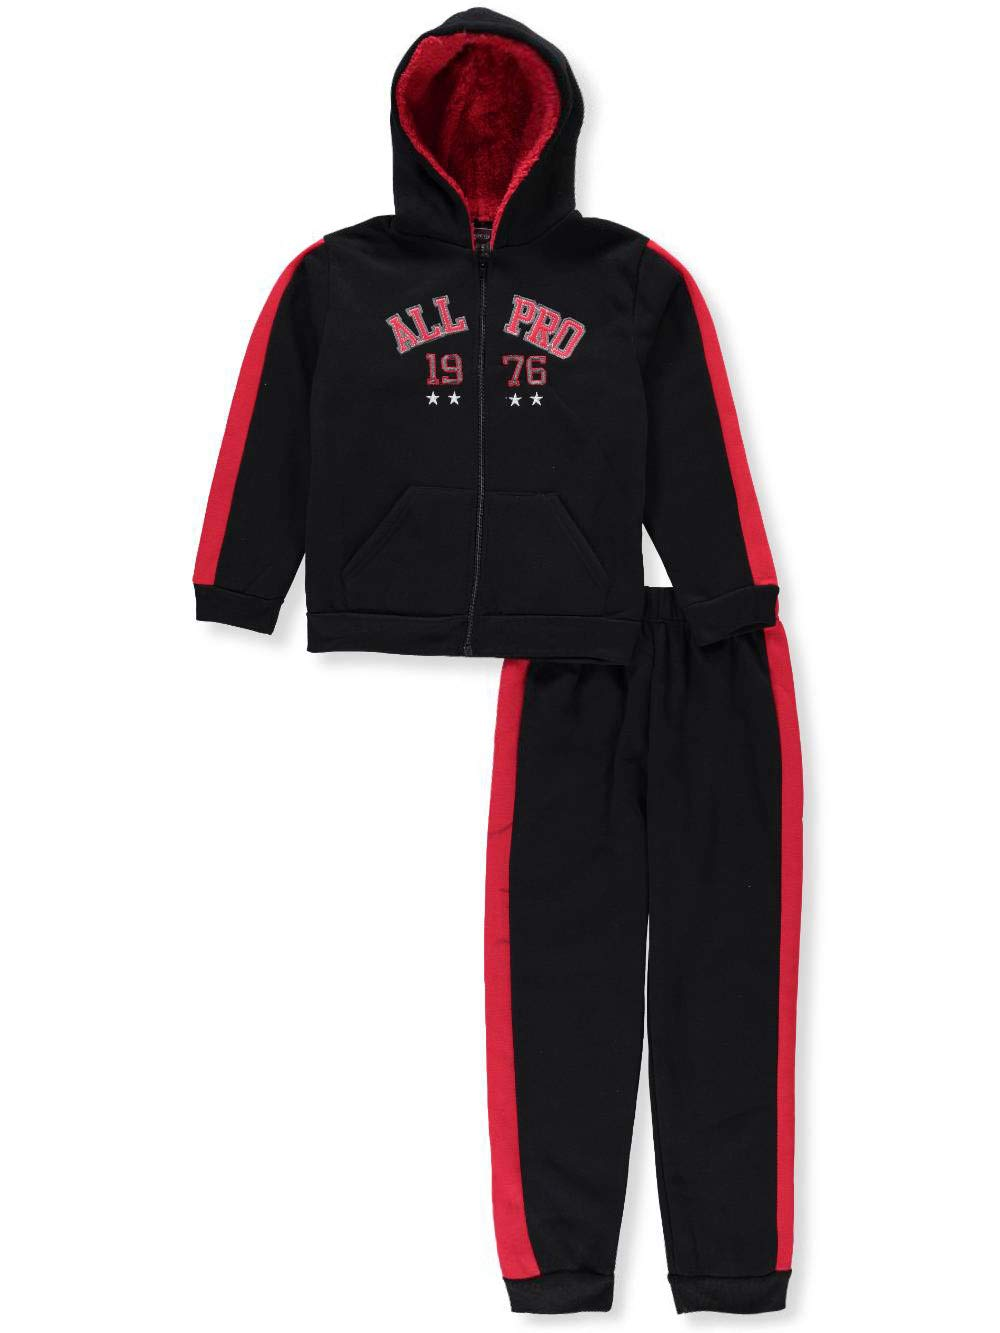 Quad Seven Boys' 2-Piece Sweatsuit Pants Set